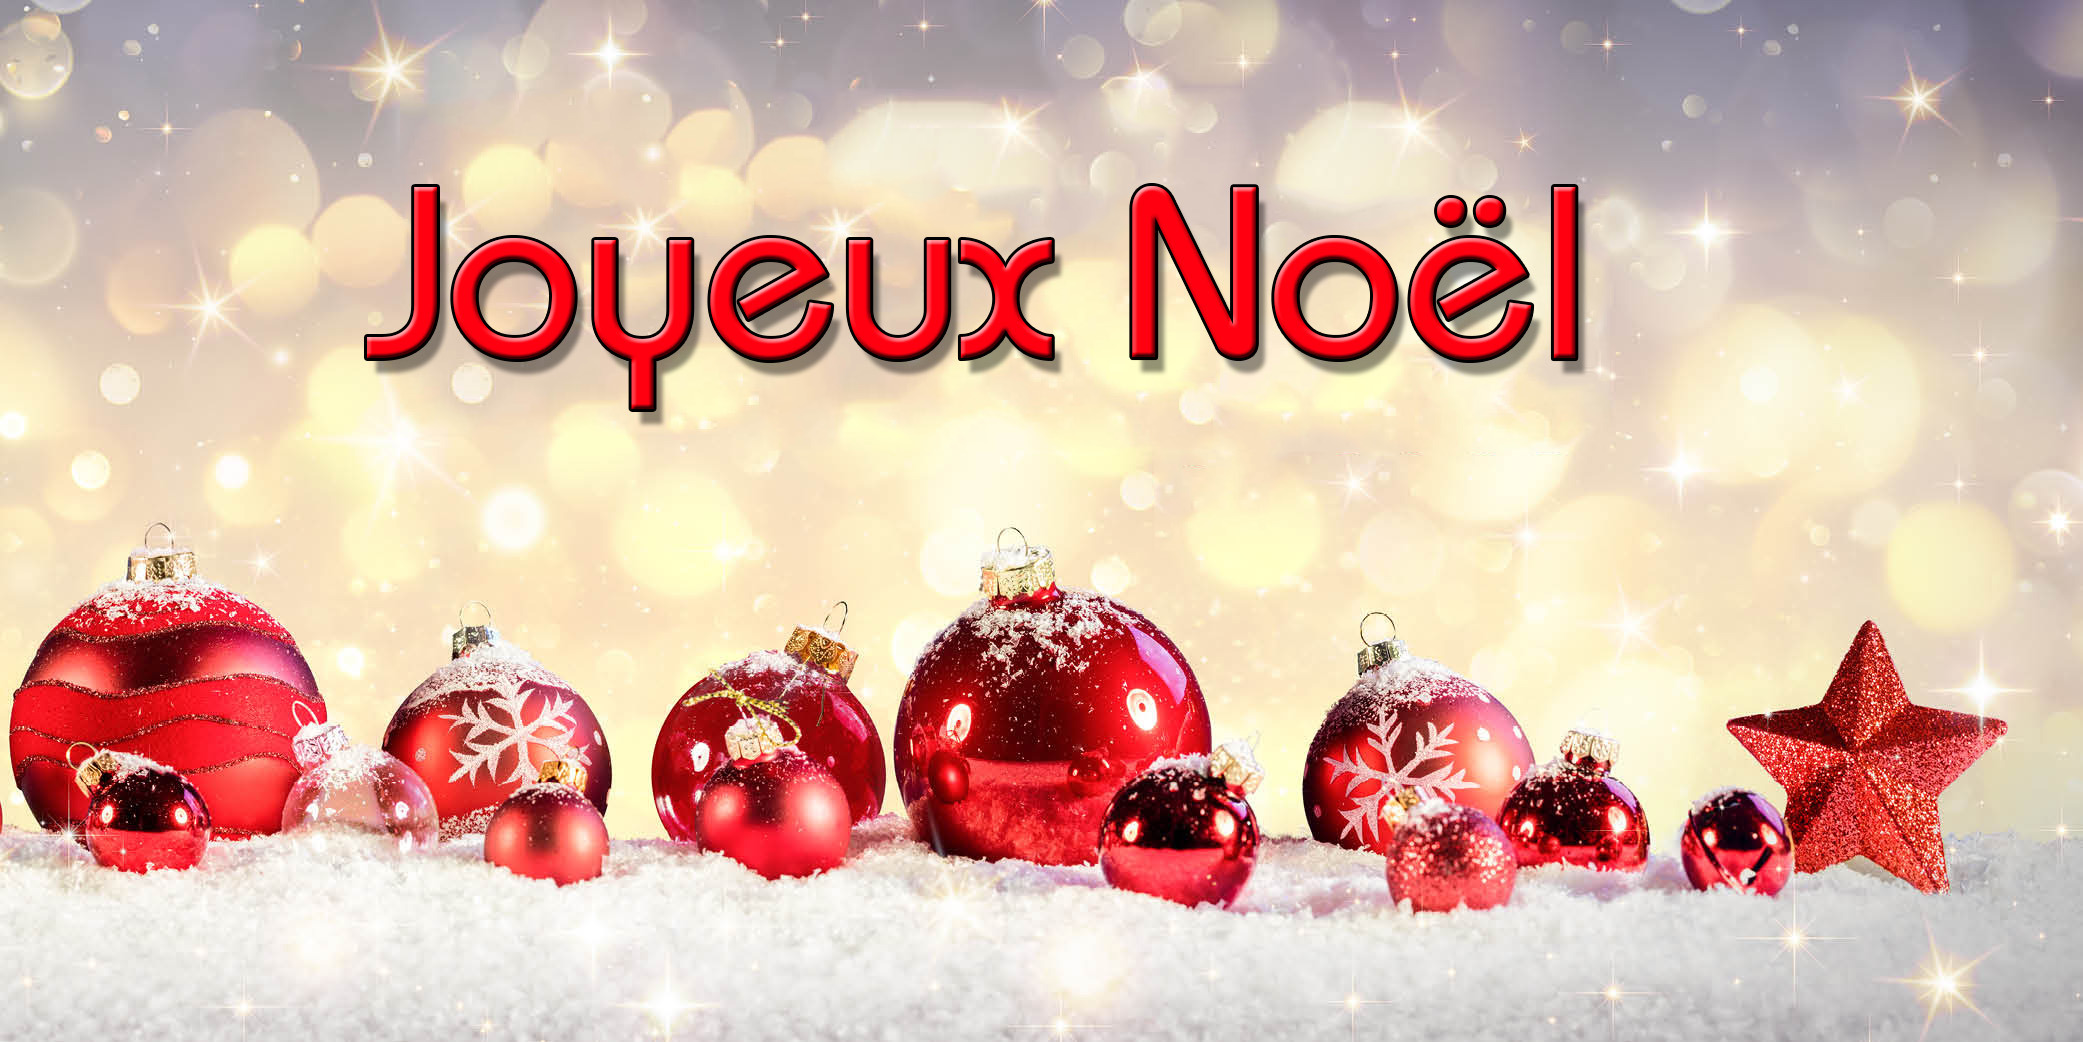 buon natale in francese